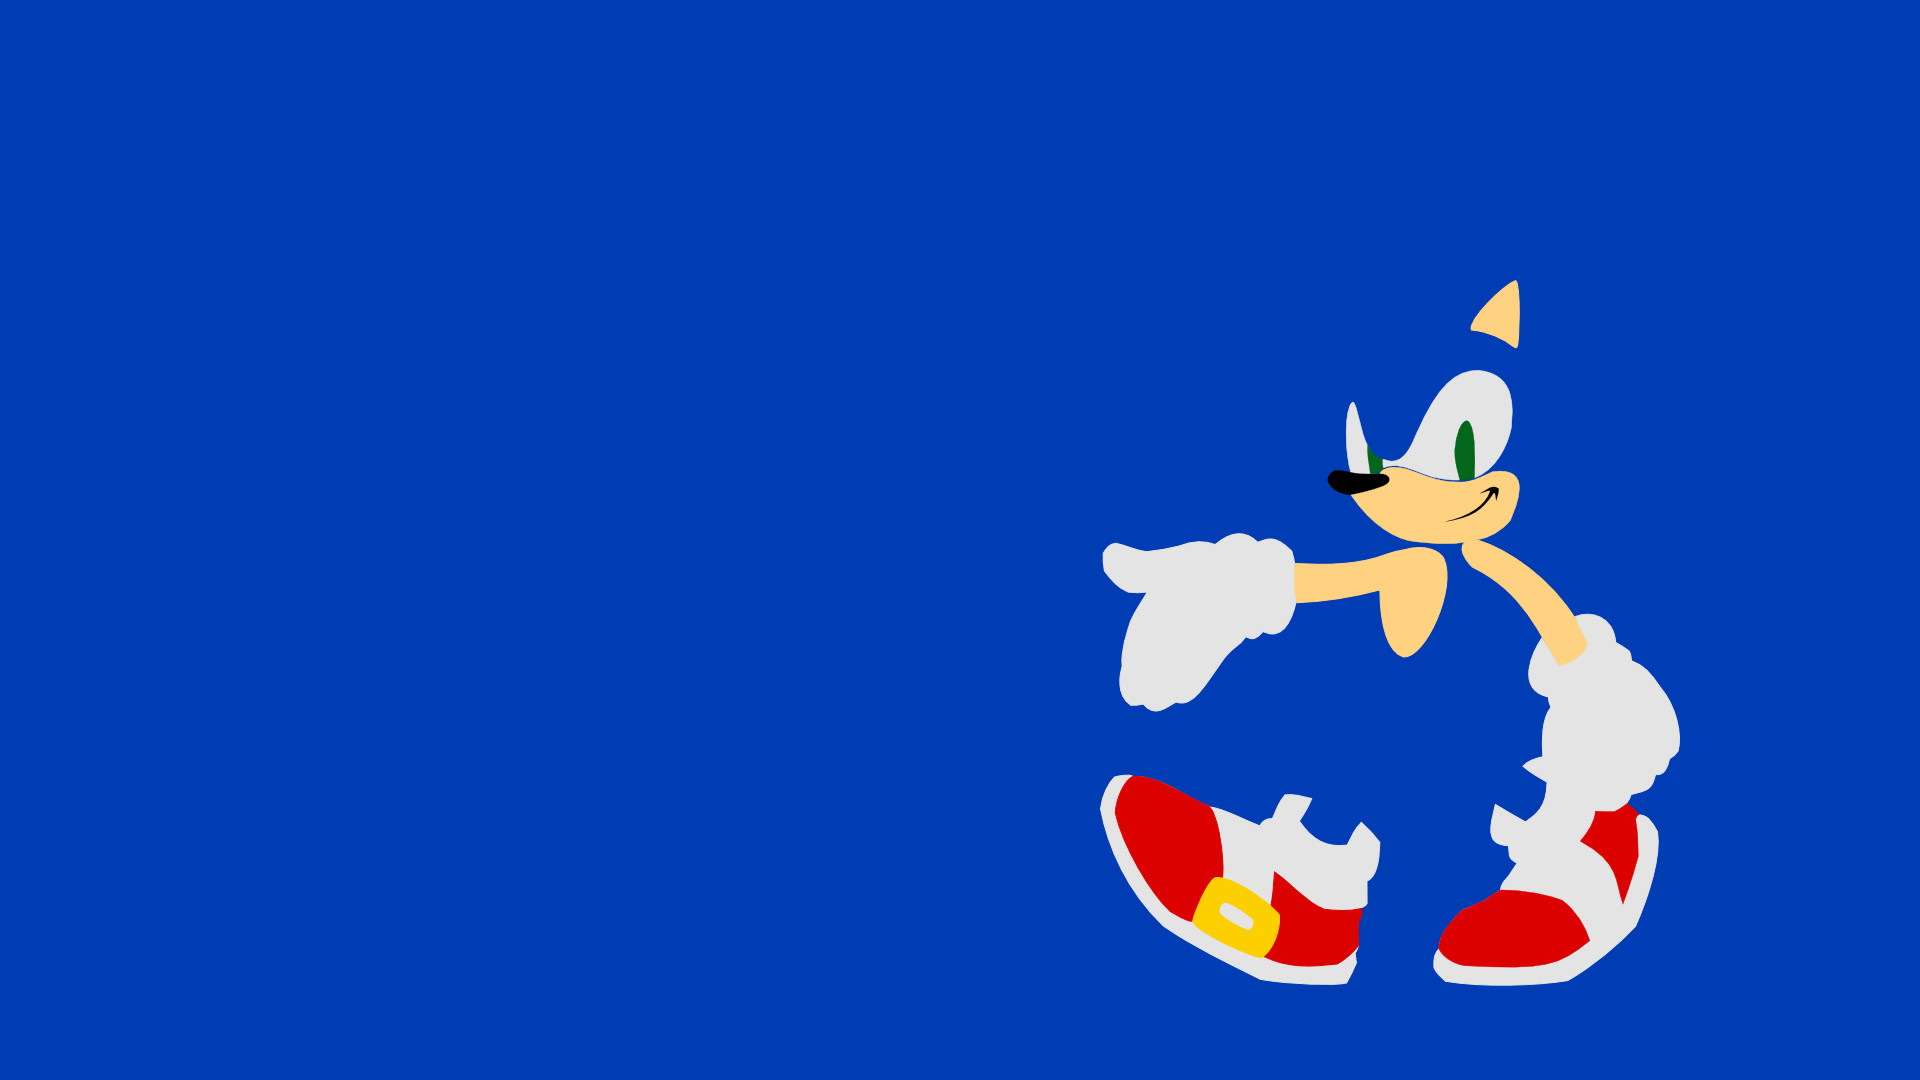 Sonic The Hedgehog Iphone Wallpaper 64 Images